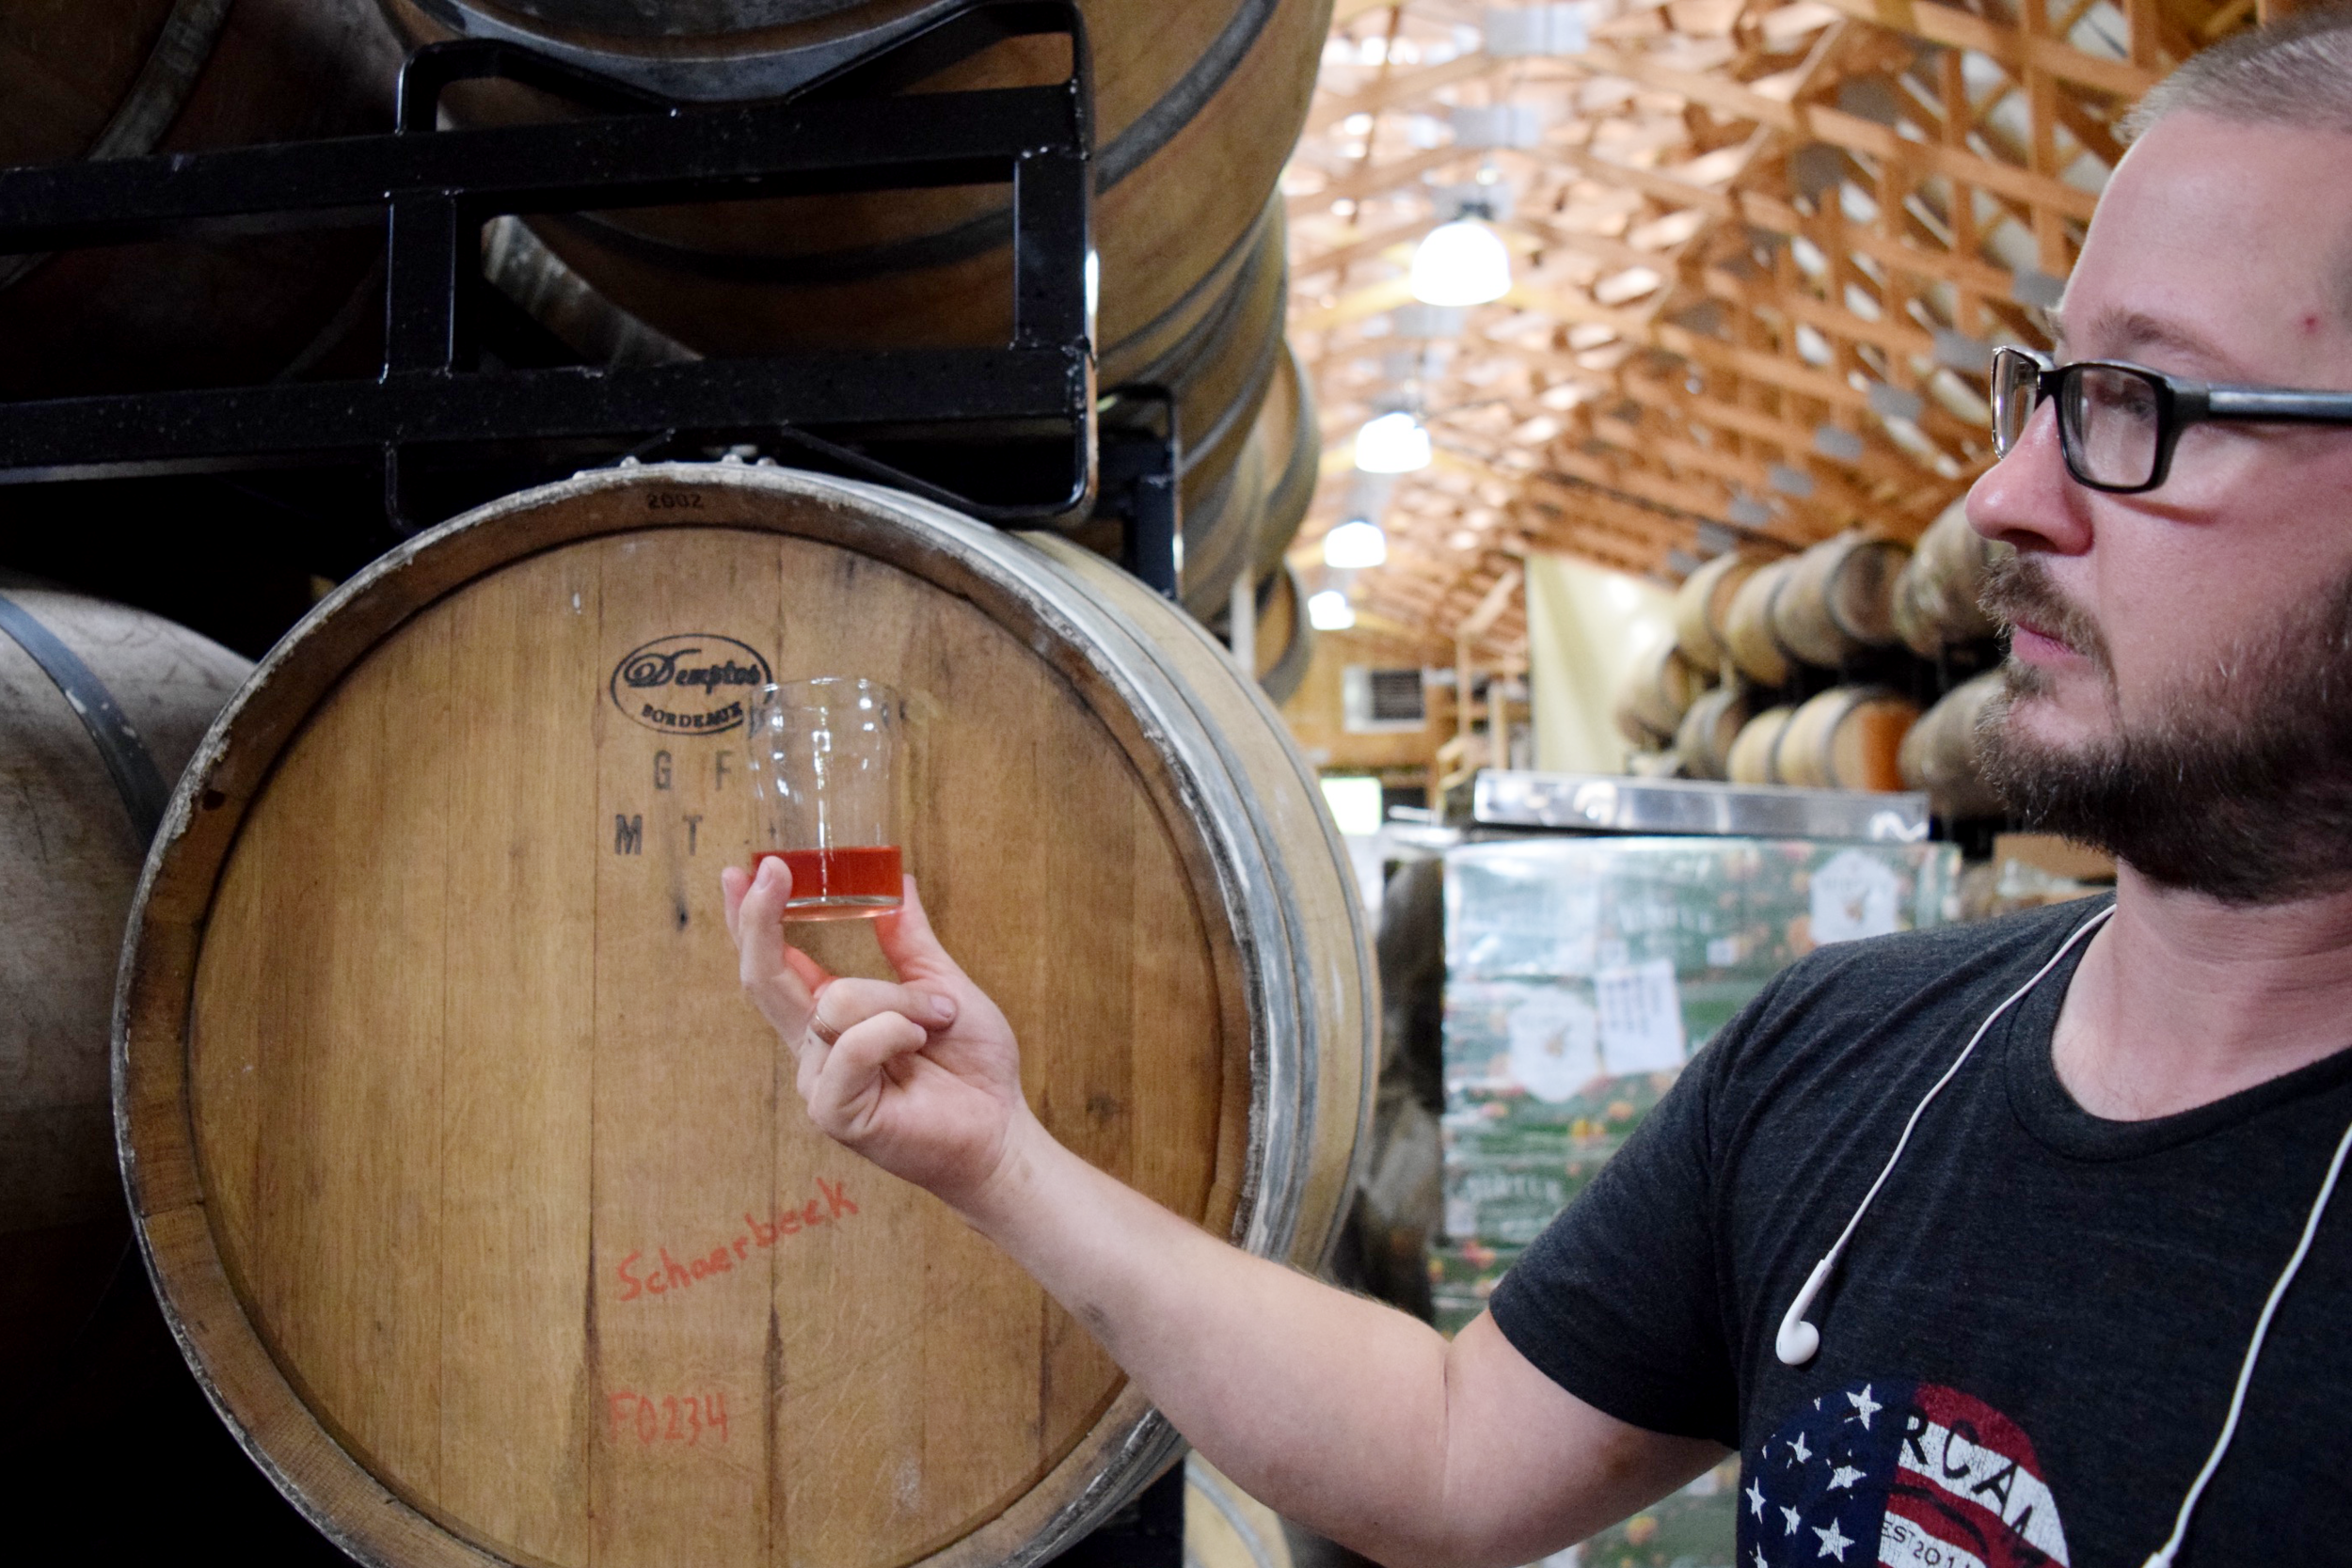 Virtue Cider Head Cidermaker Seth Boeve observes an early version of a small batch of cider with cherries.